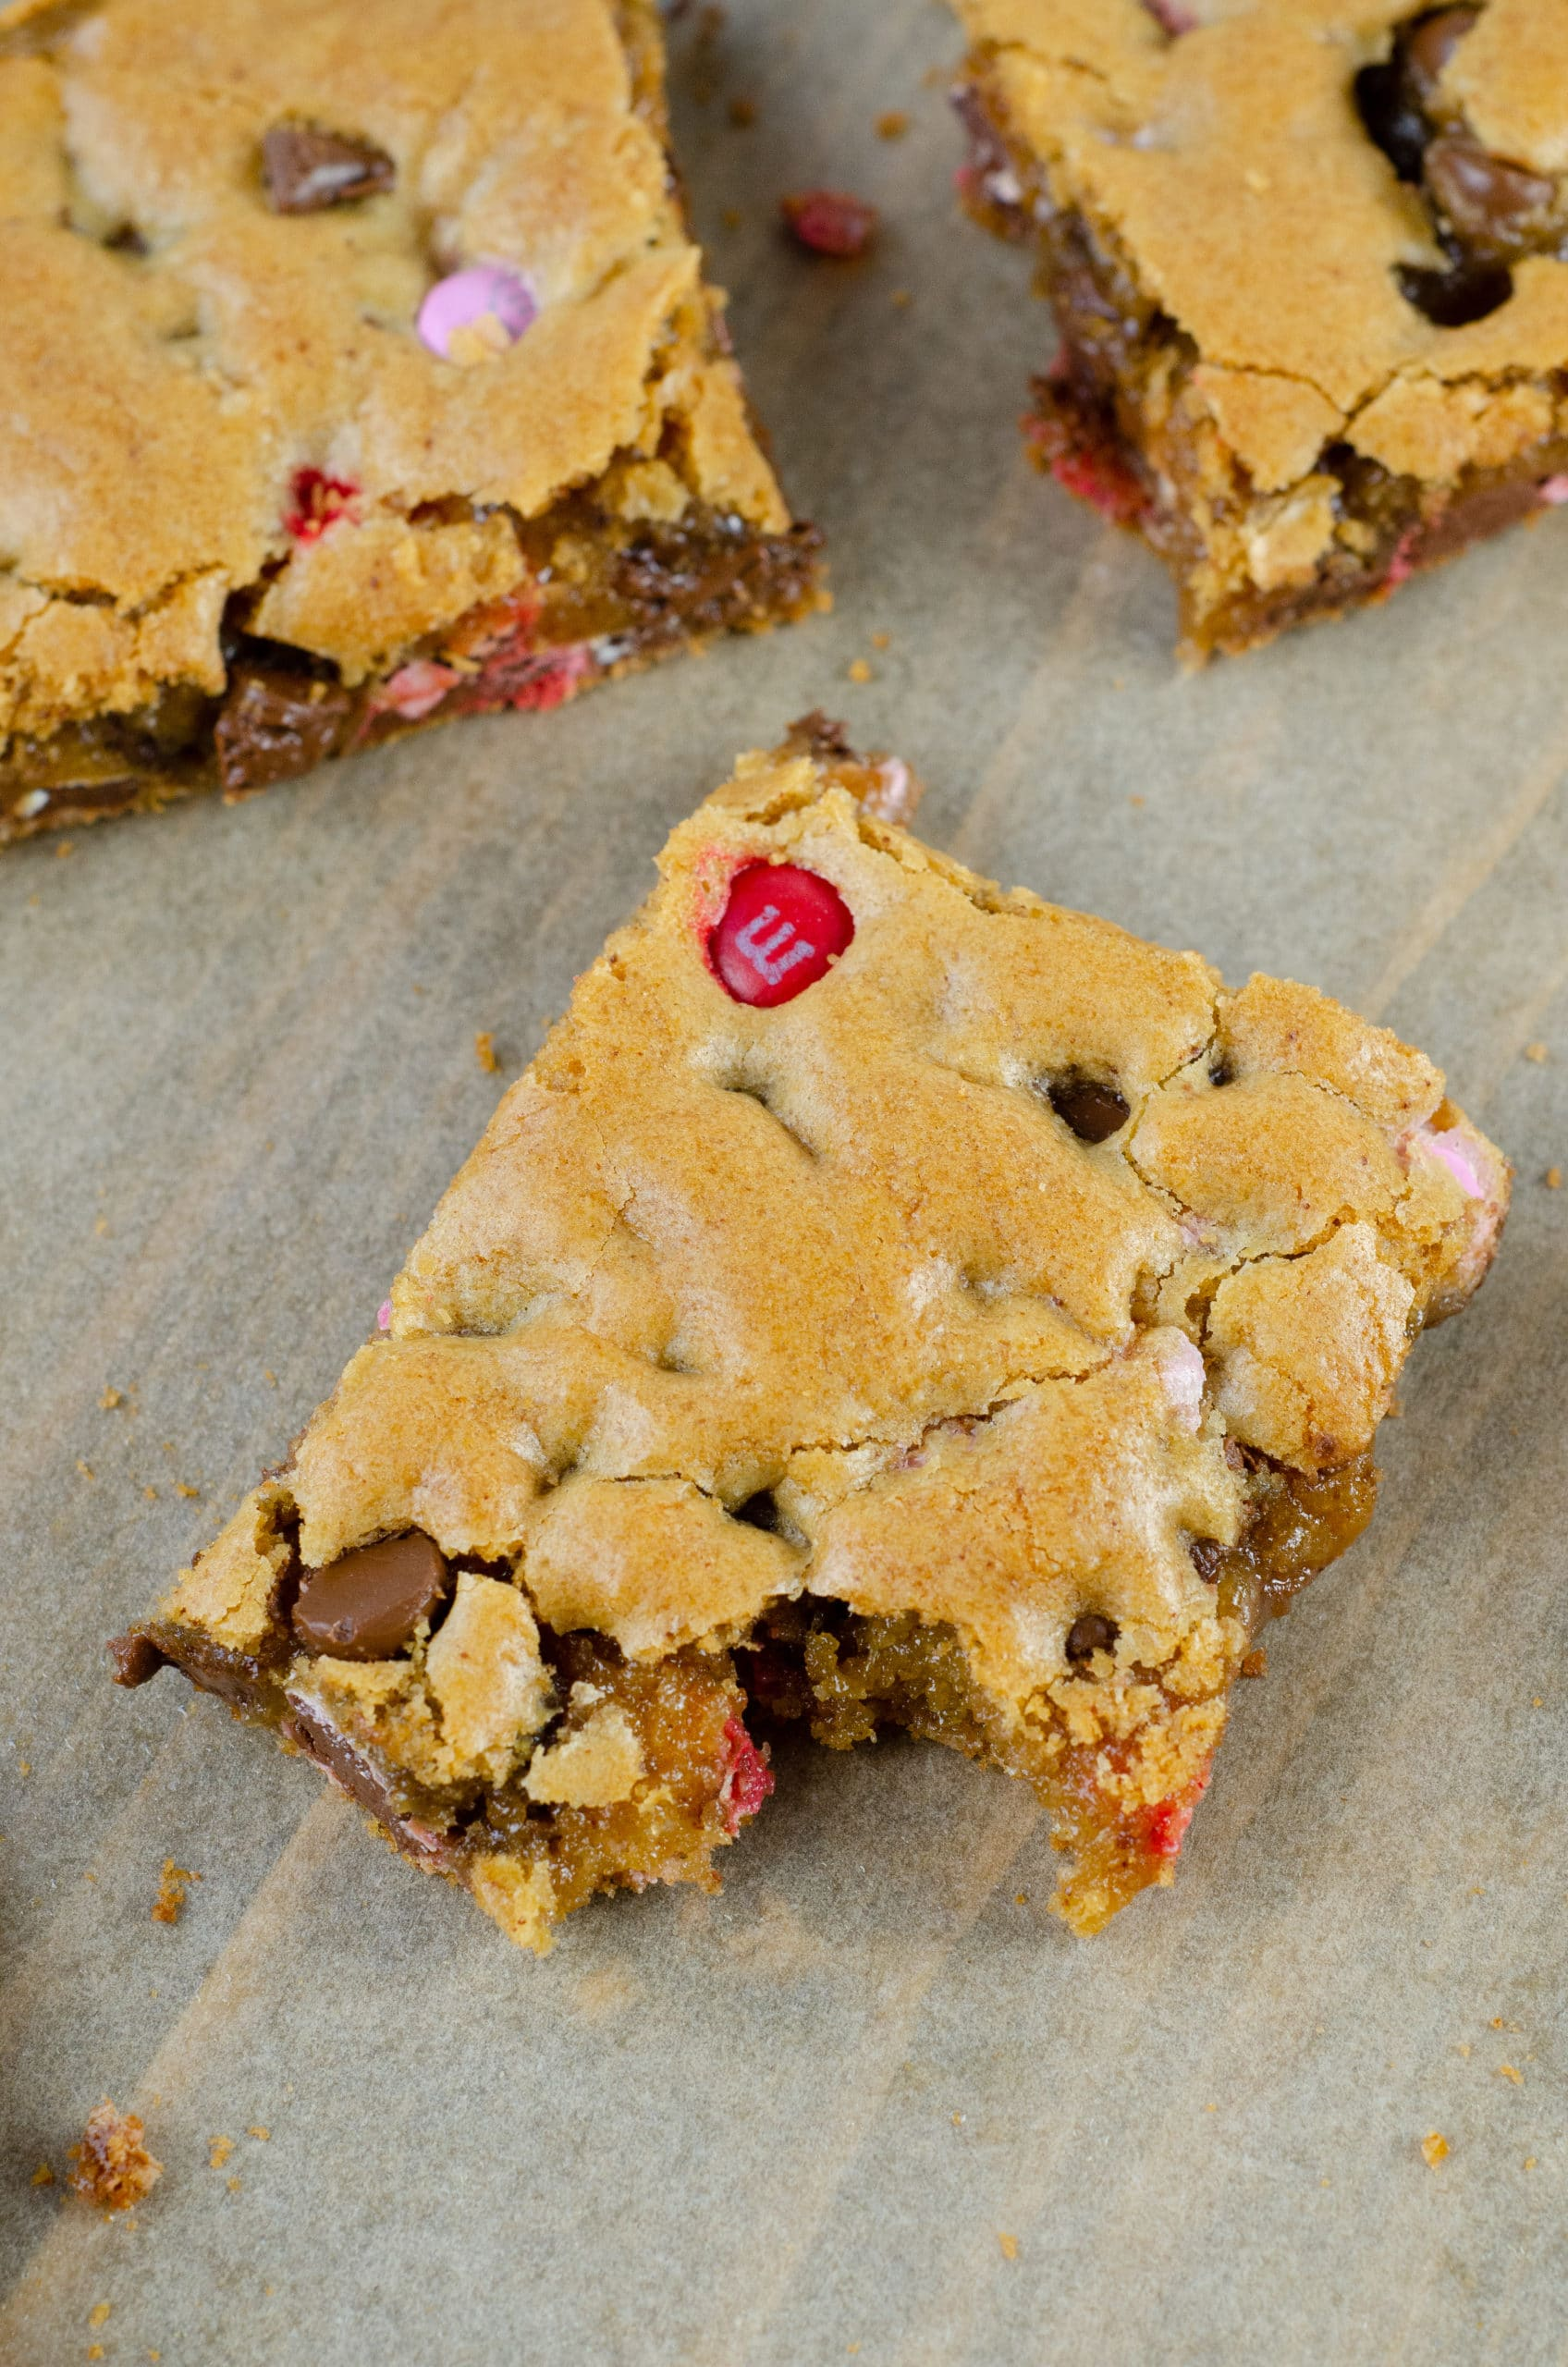 Browned Butter M&M Blondies Bite Bars. These Valentine's day themed Browned Butter M&M Blondies are the perfect way to say I heart you to someone special. I love to bake them for my little ones year-round. They are so chewy and chocolatey they make it easy for me to look like a master dessert chef.